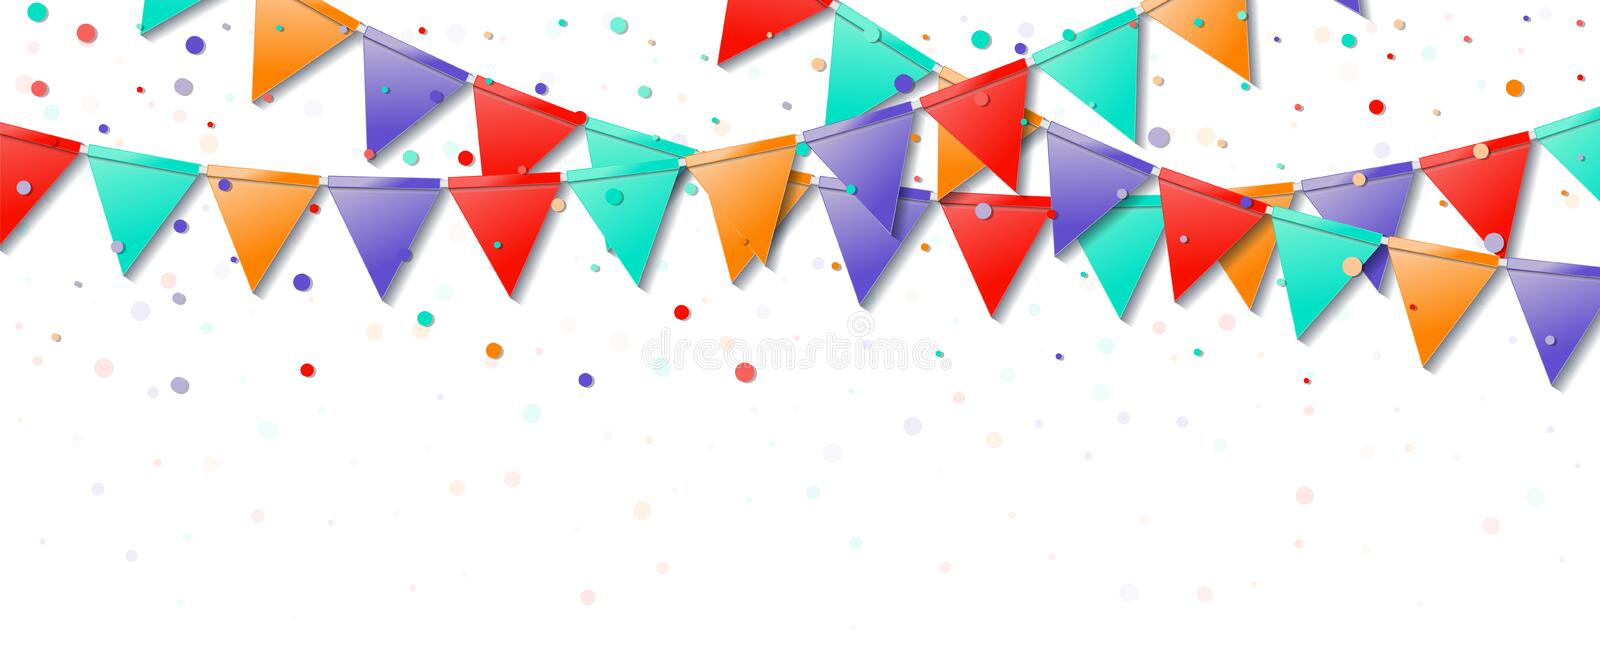 Bunting flags. Glamorous celebration card. Bright colorful holiday decorations and confetti. Bunting flags vector illustration royalty free illustration